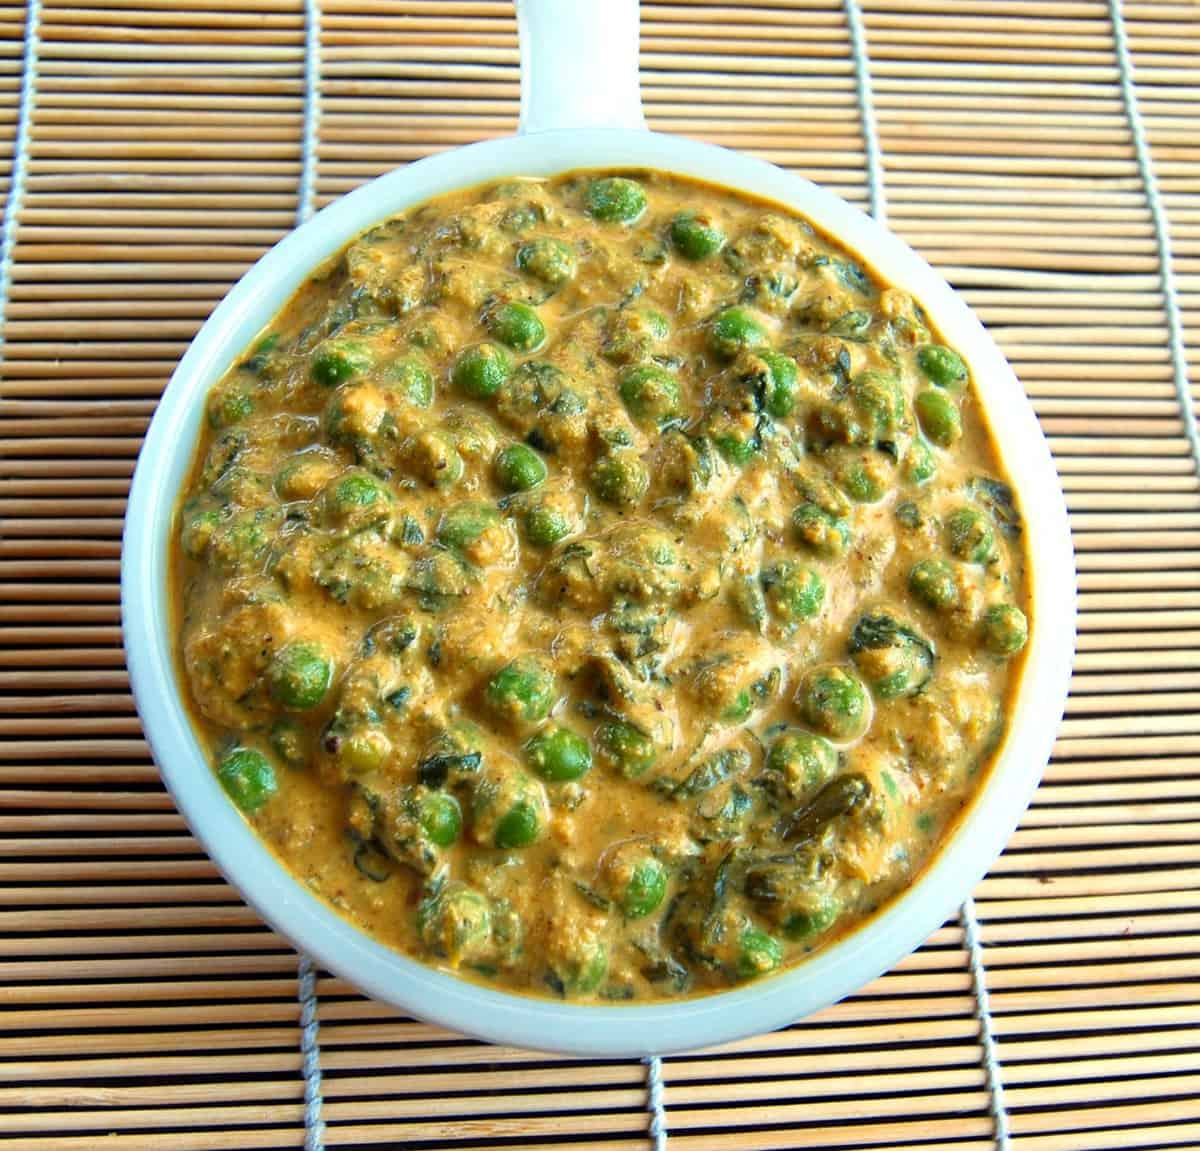 Overhead photo of methi matar malai or fenugreek and peas in a cream sauce in a white bowl on a straw mat.